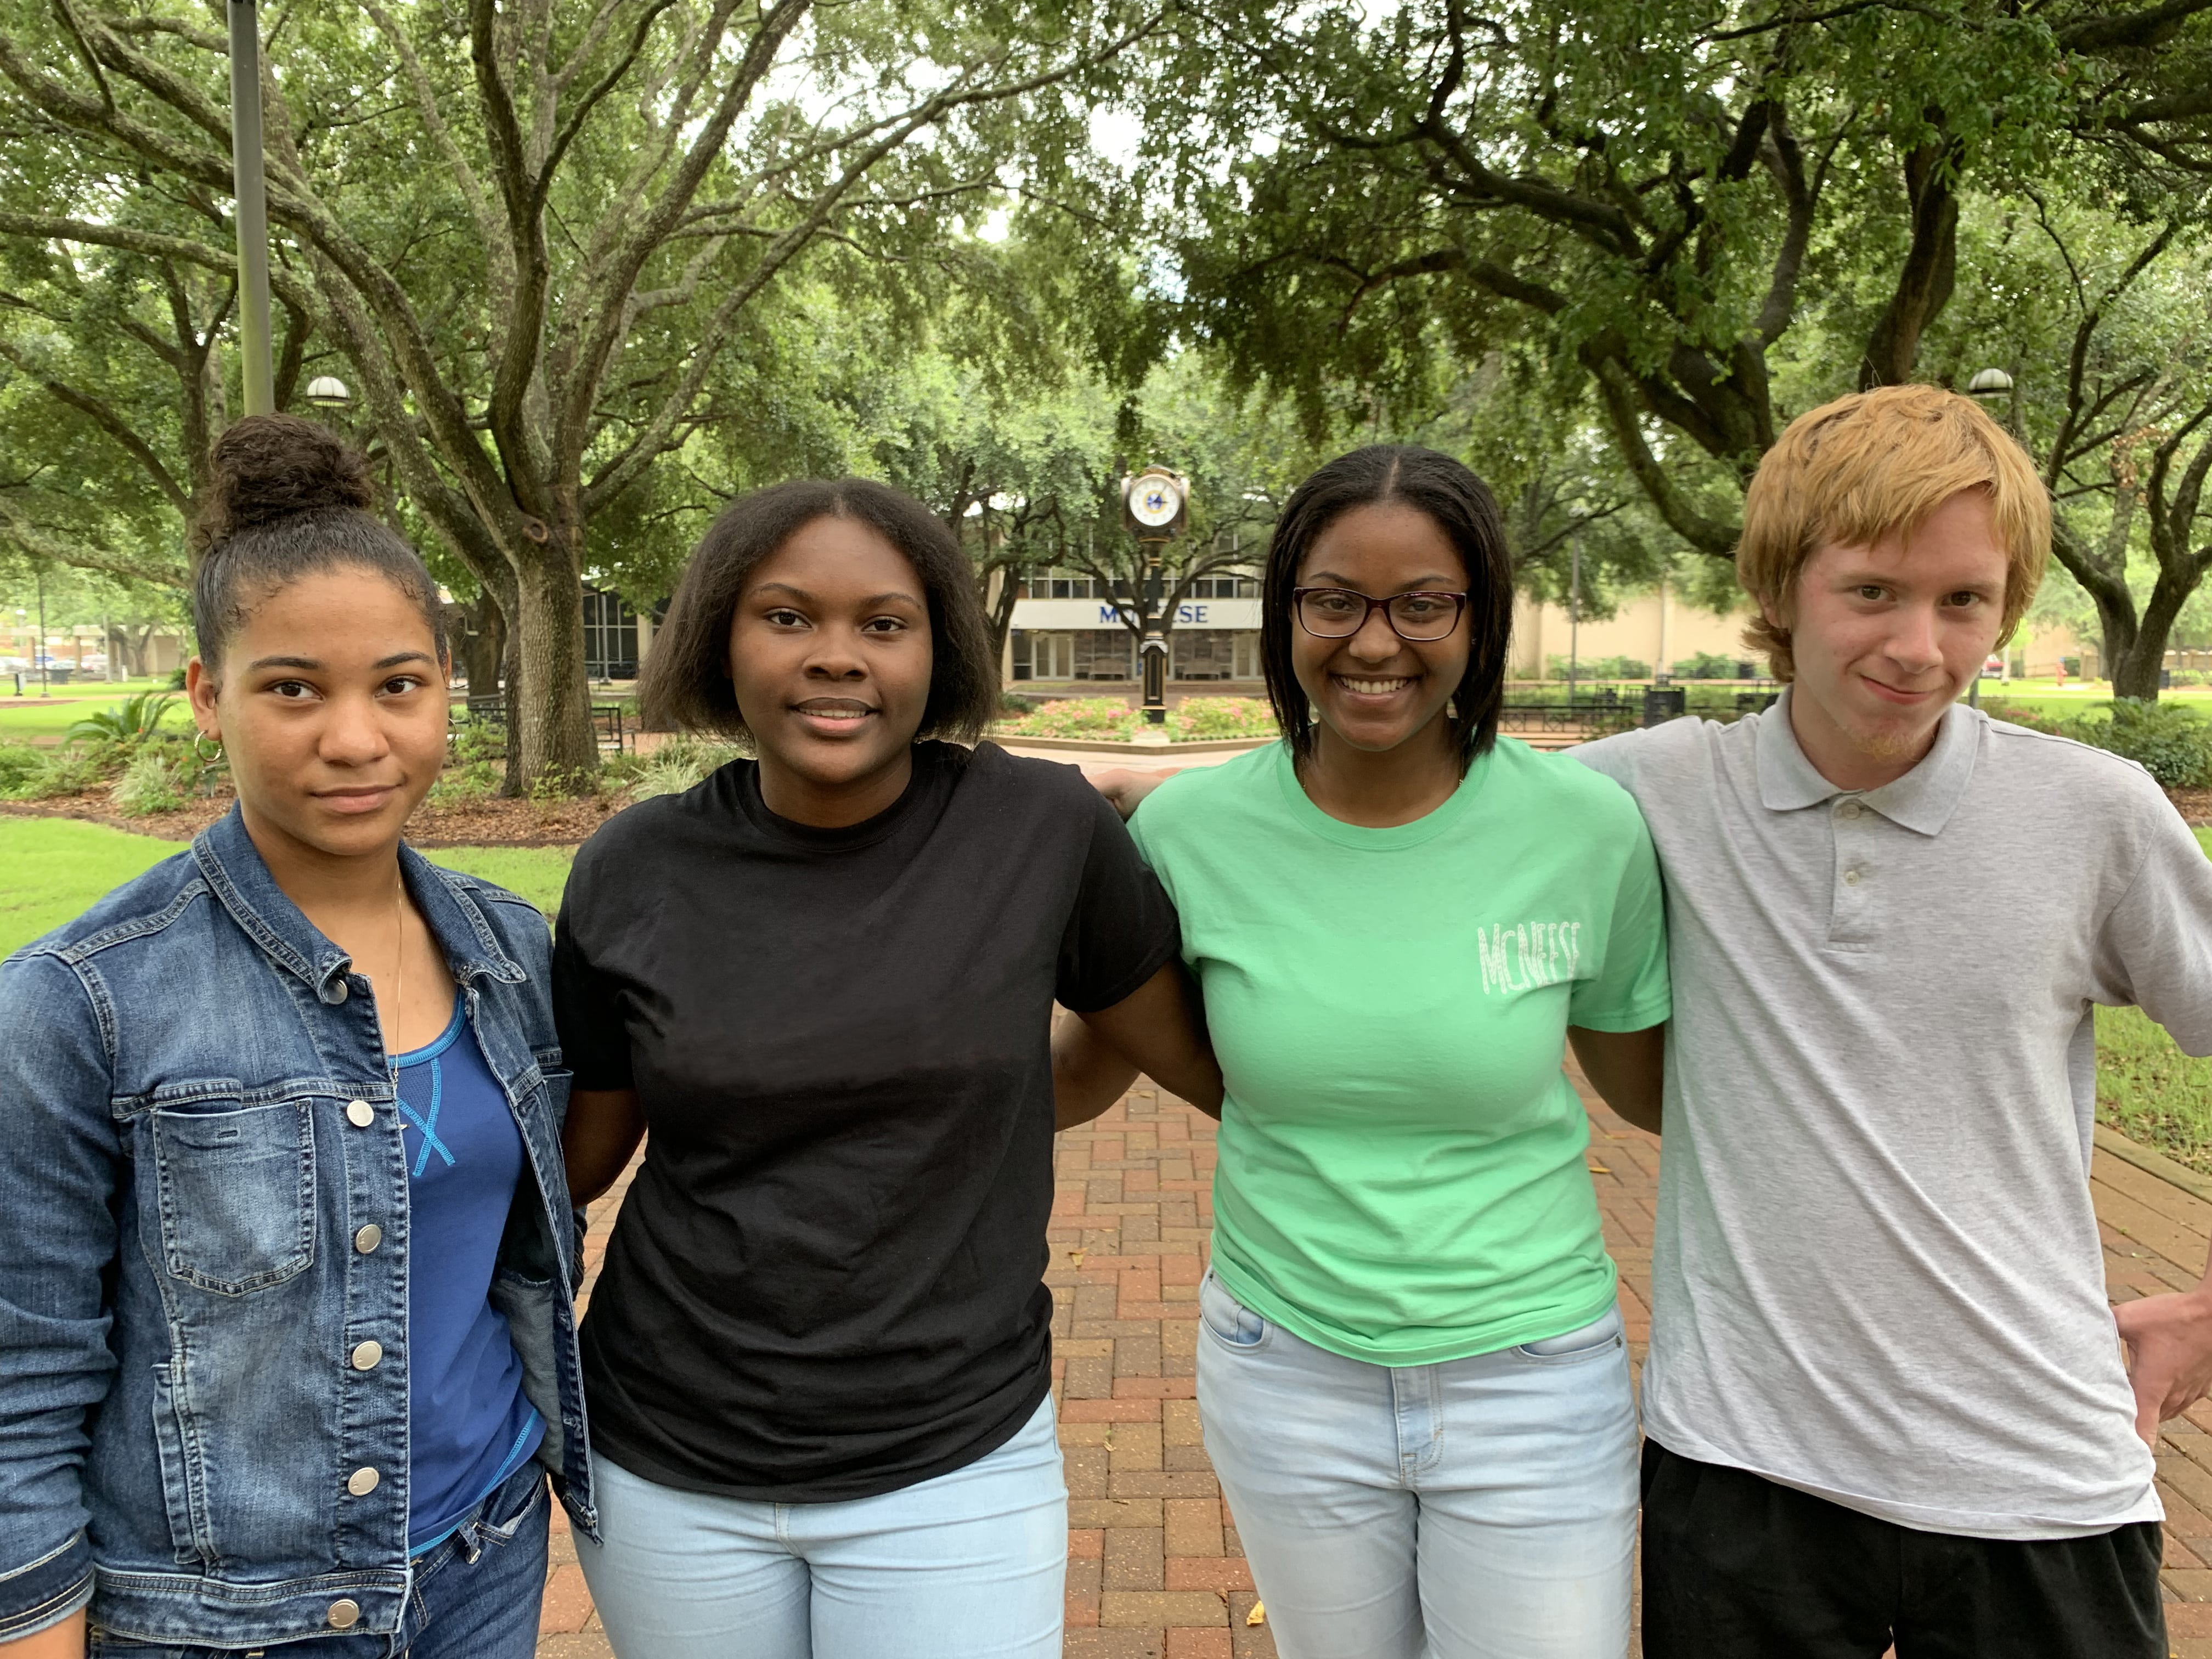 Portrait of students Takyra Gauthier, Audriana Obey, Jonae Vital and Alexander Roach